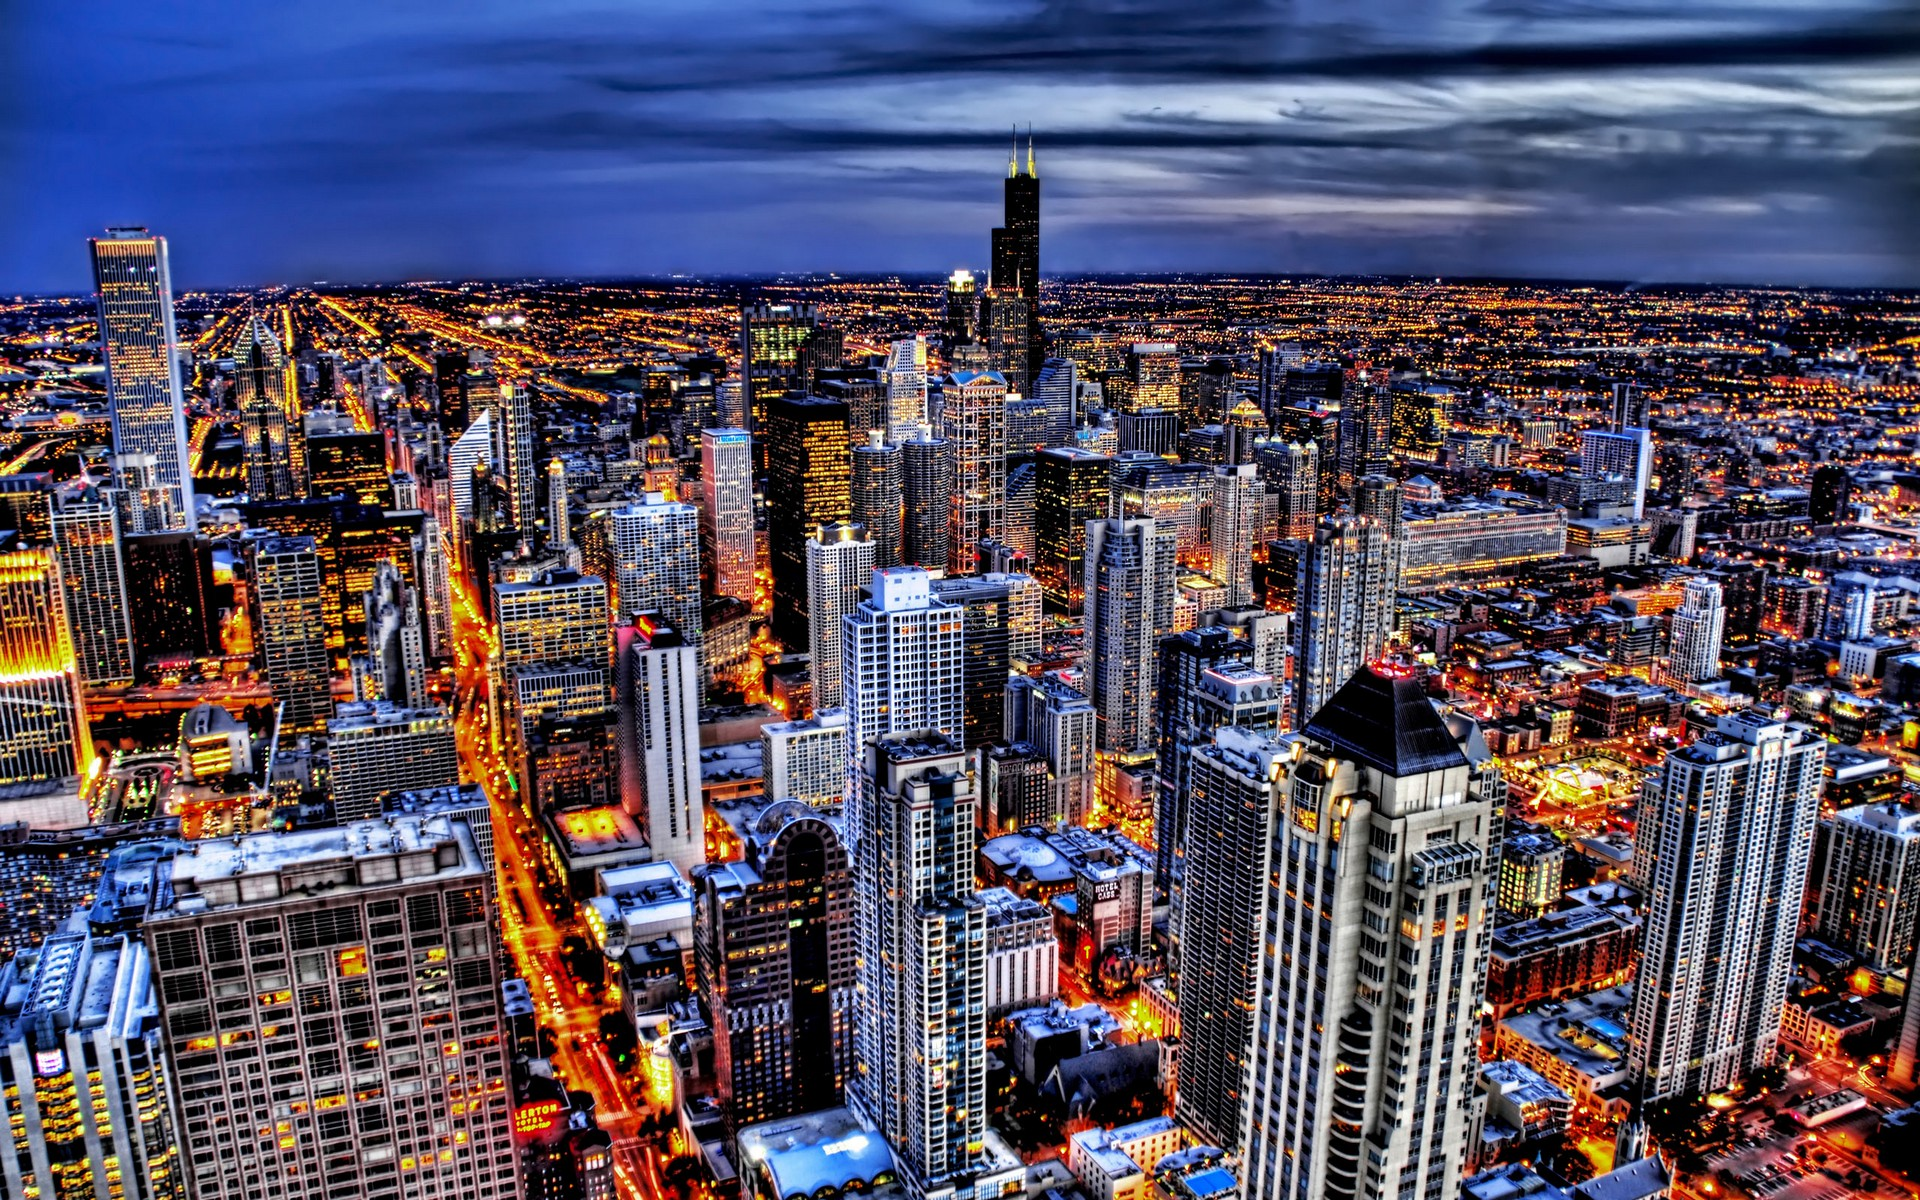 HD City Wallpaper Images For Desktop Download 1920x1200